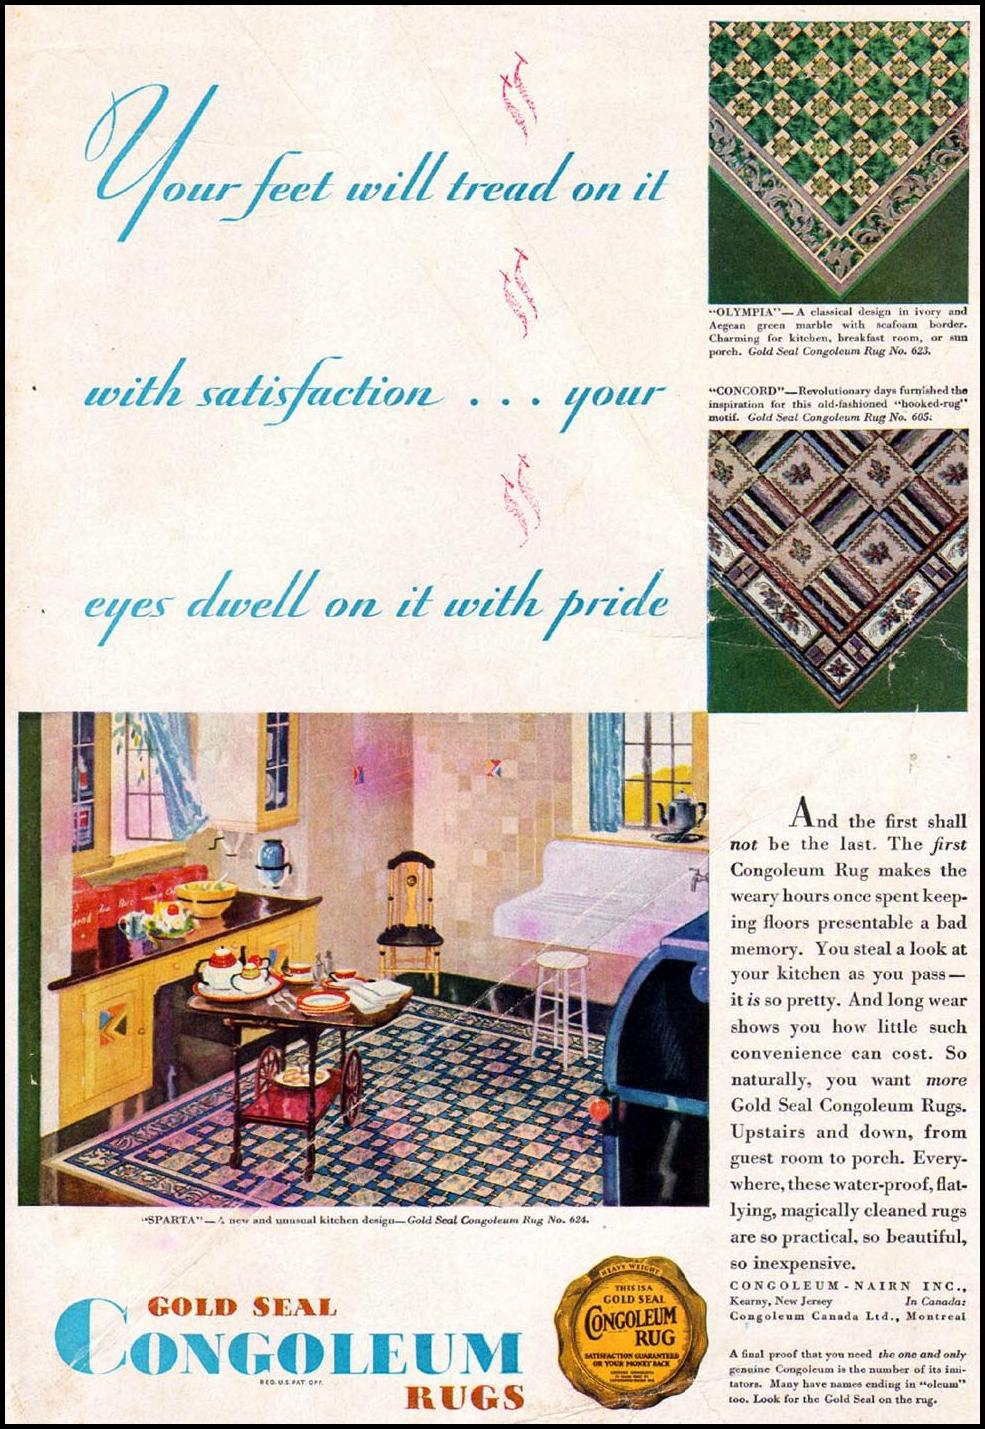 GOLD SEAL CONGOLEUM RUGS BETTER HOMES AND GARDENS 03/01/1932 INSIDE FRONT